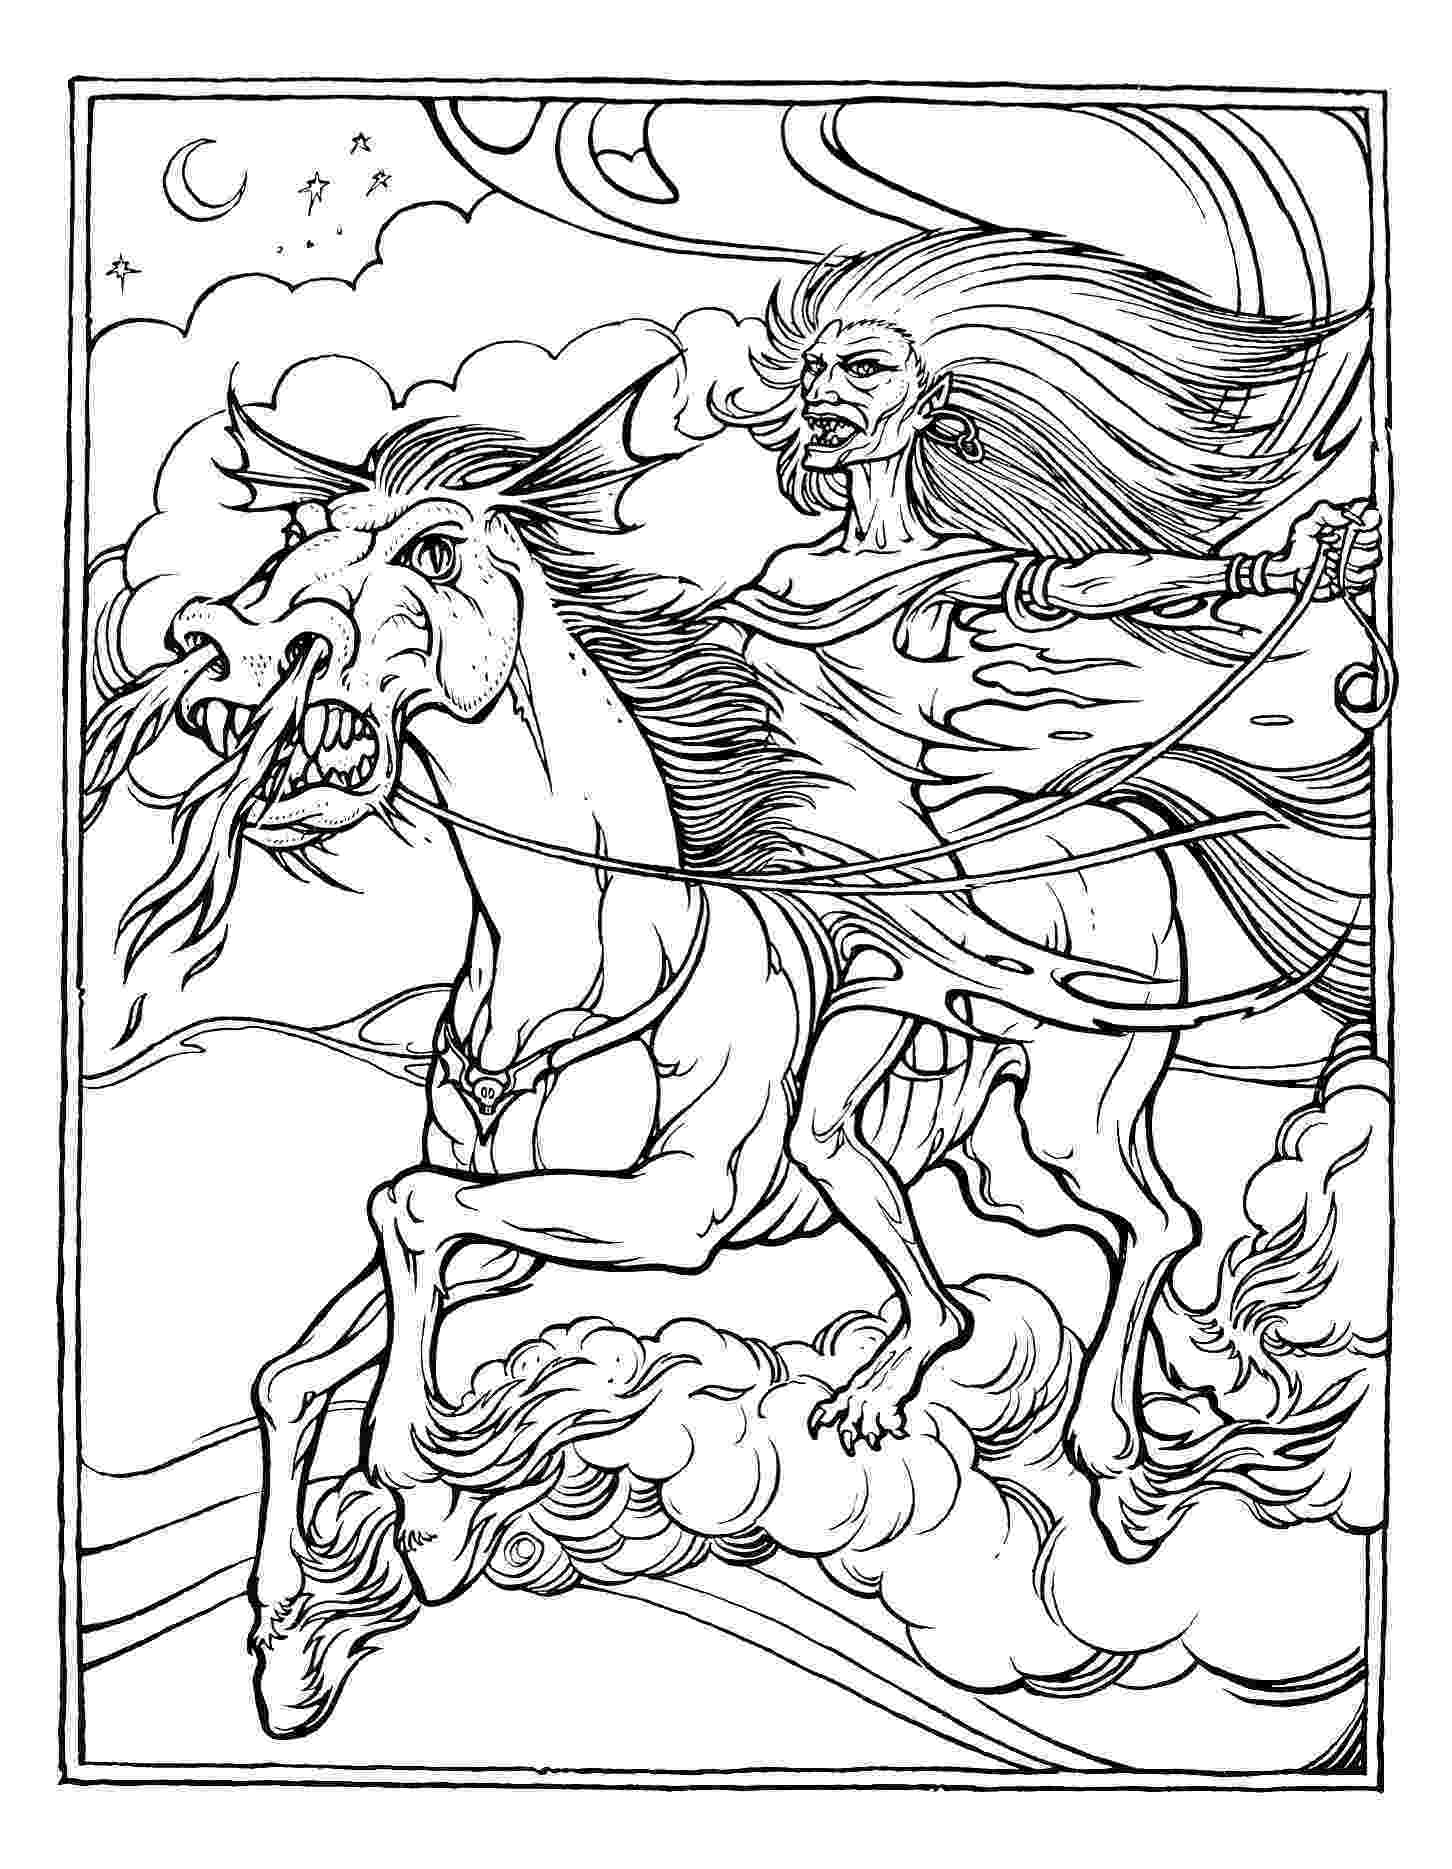 dragons coloring pages top 10 free printable chinese dragon coloring pages online pages coloring dragons